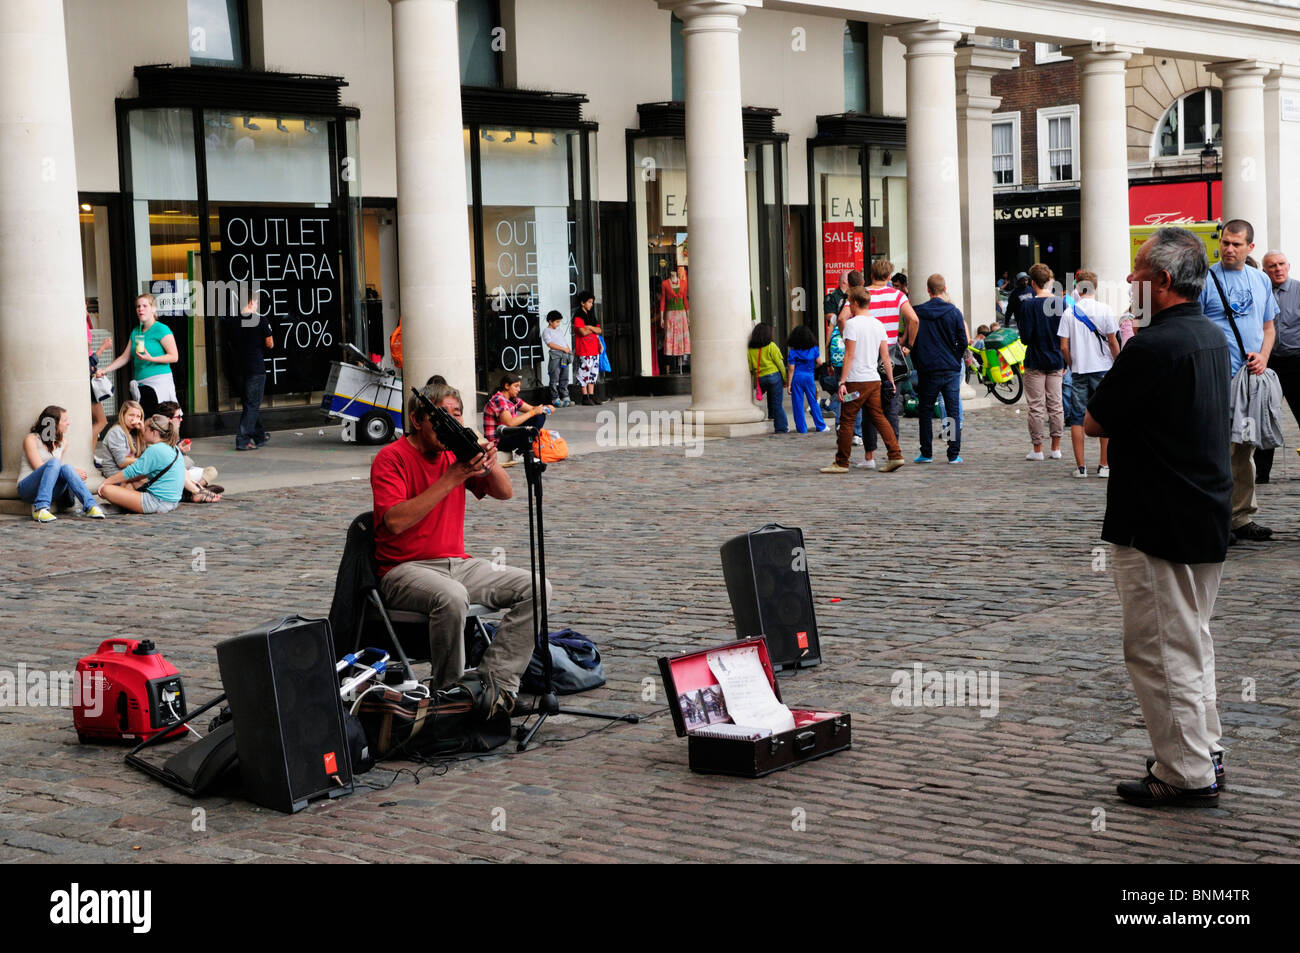 Chinese Street Musician Busker playing a Sheng wind instrument, Covent Garden Piazza, London, England, UK - Stock Image